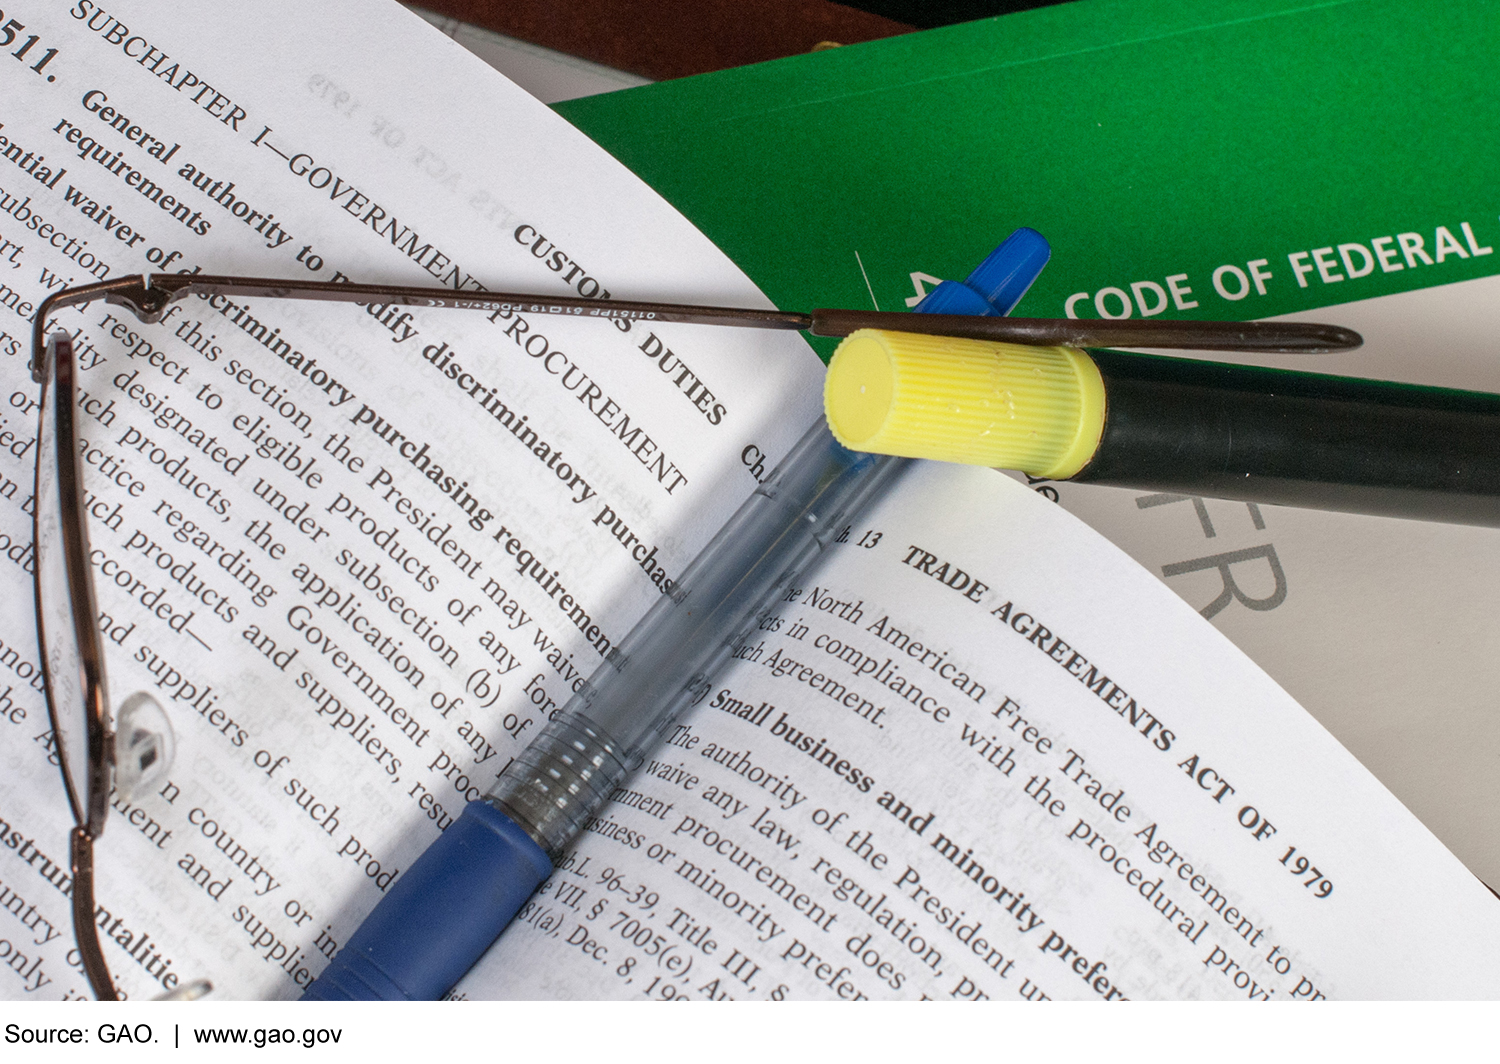 Photo of books on federal regulations, a pen, glasses, and highlighter.